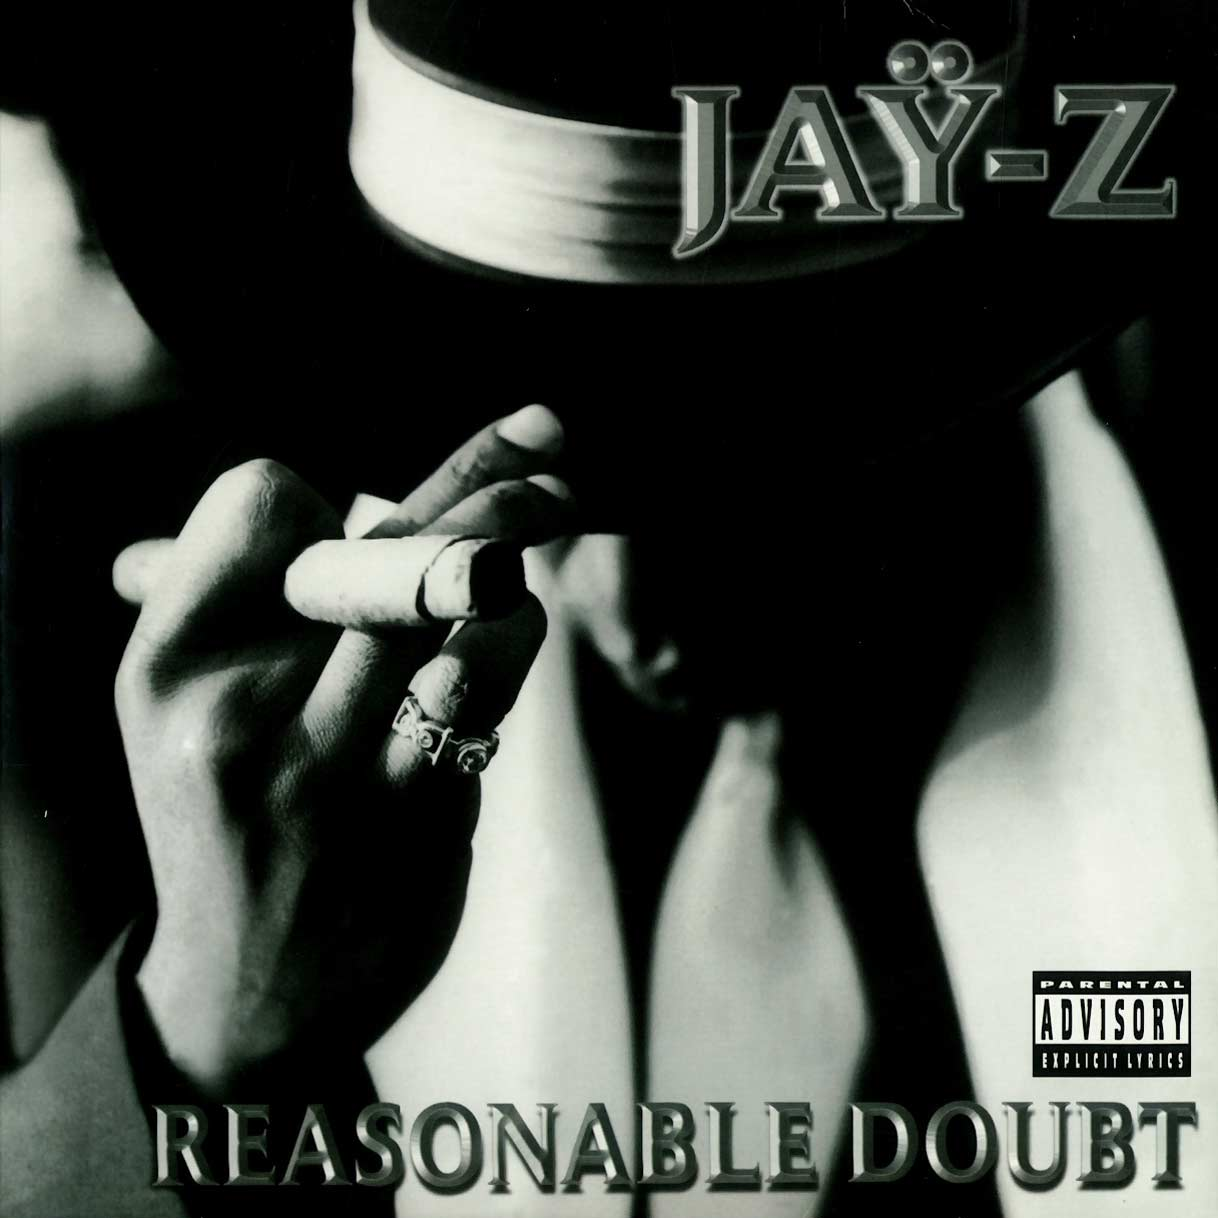 Album Title: Reasonable Doubt by: Jay-Z